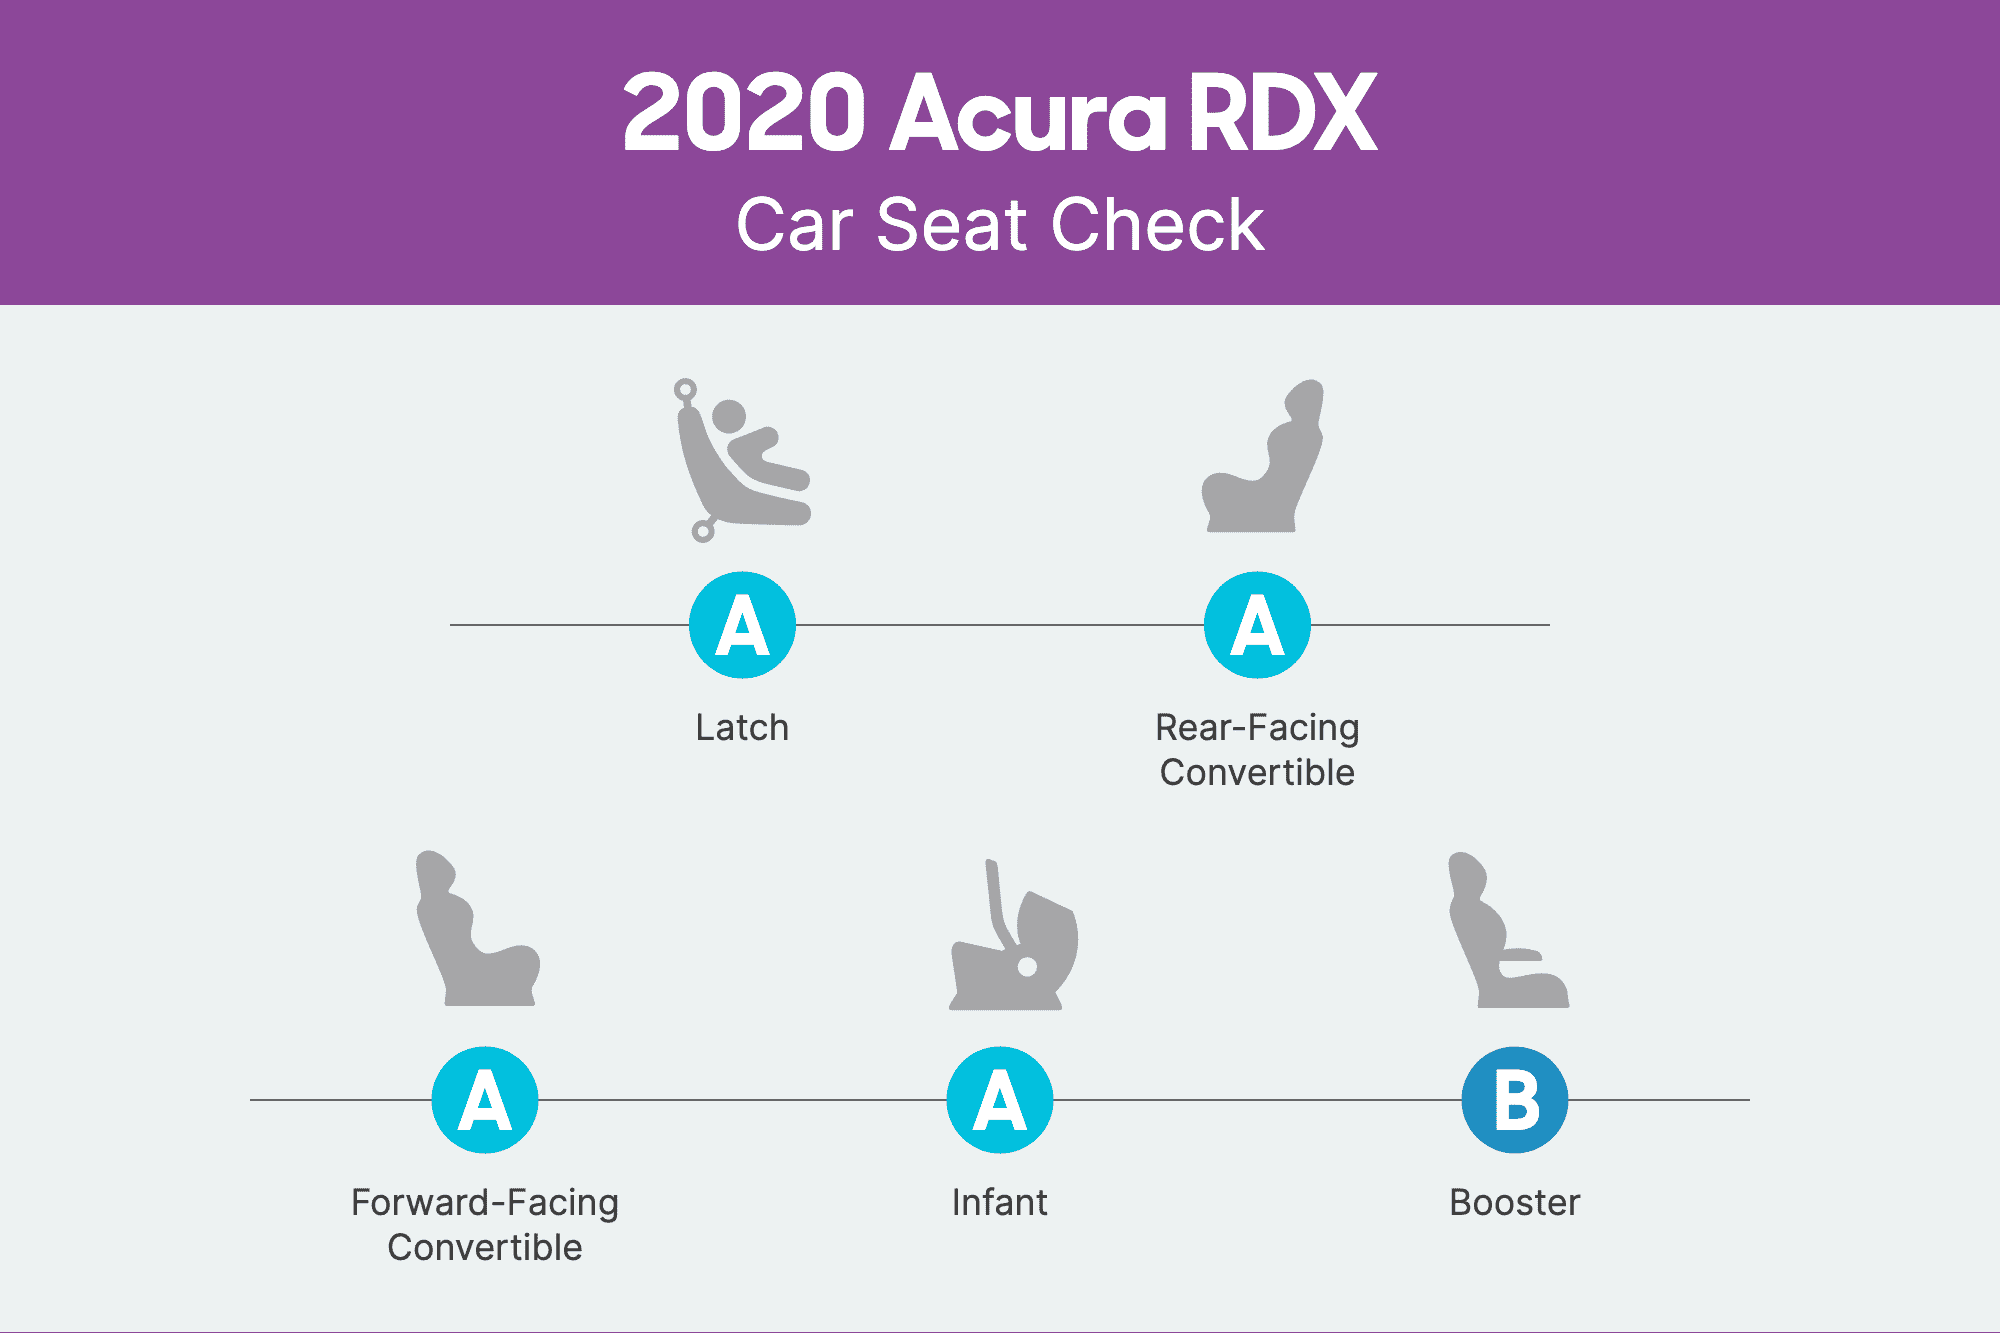 how do car seats fit in a 2020 acura rdx